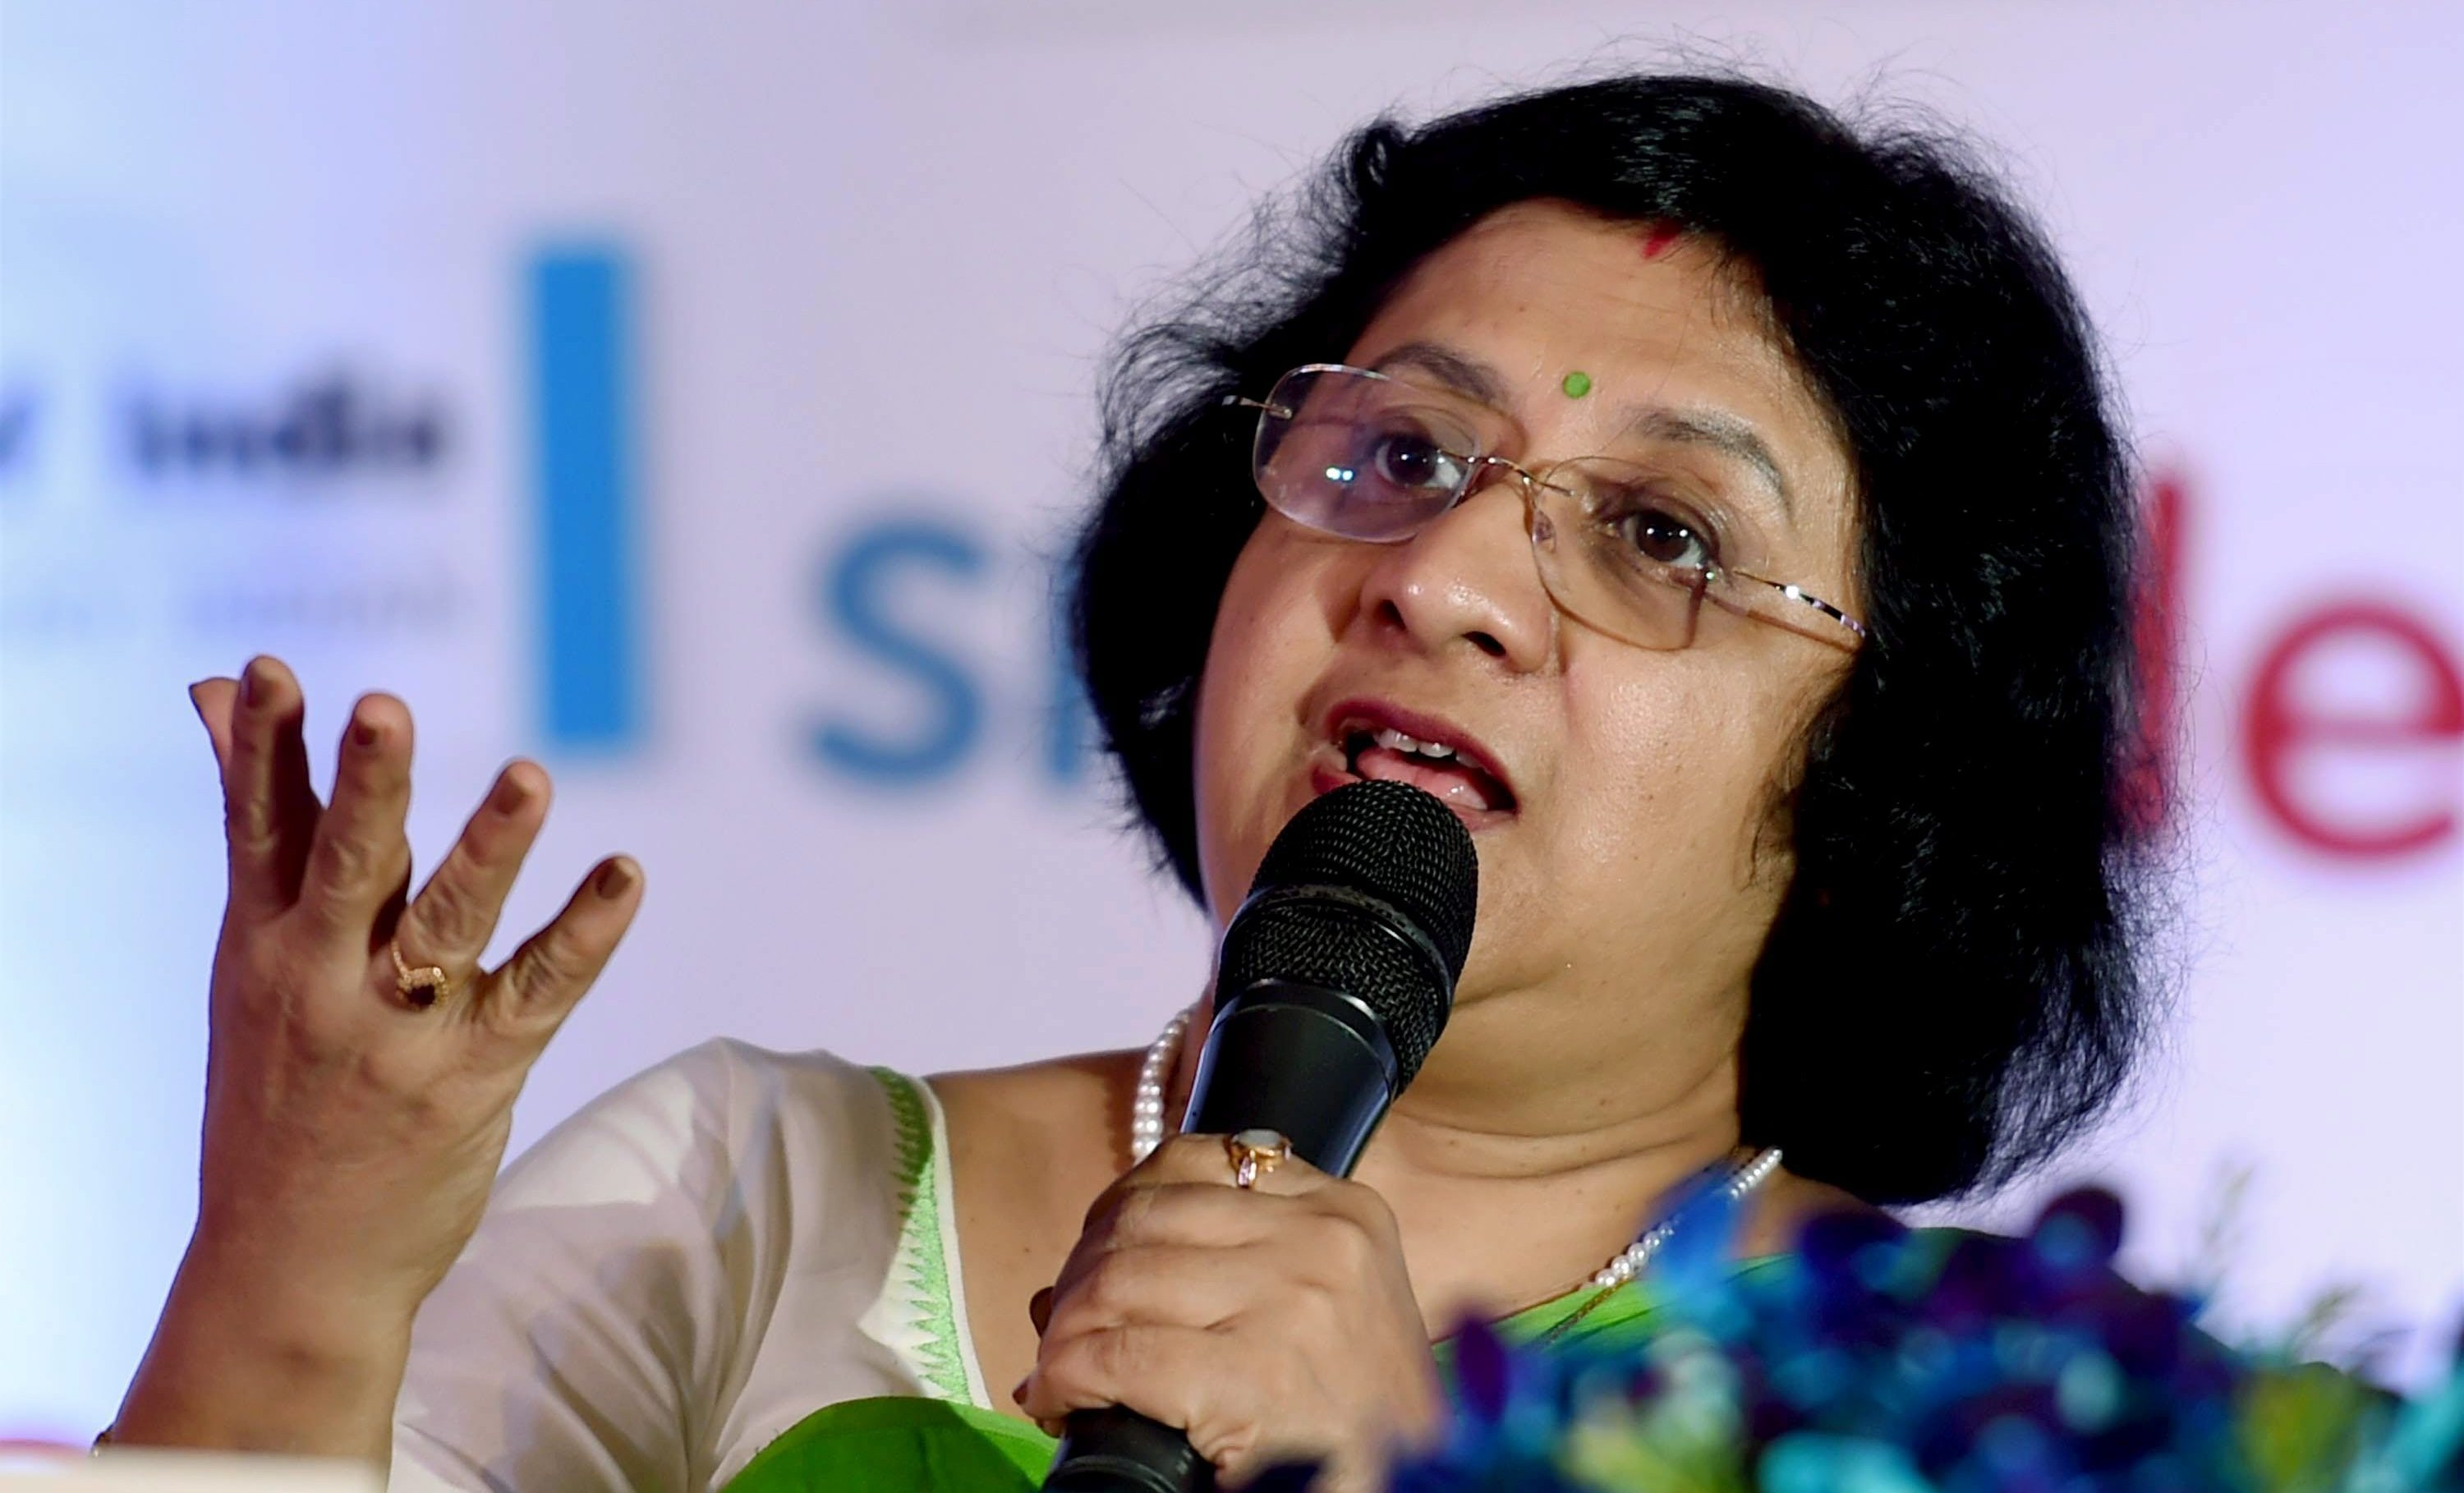 http://www.deccanchronicle.com/150527/business-latest/article/four-indians-among-worlds-100-most-powerful-women-forbes